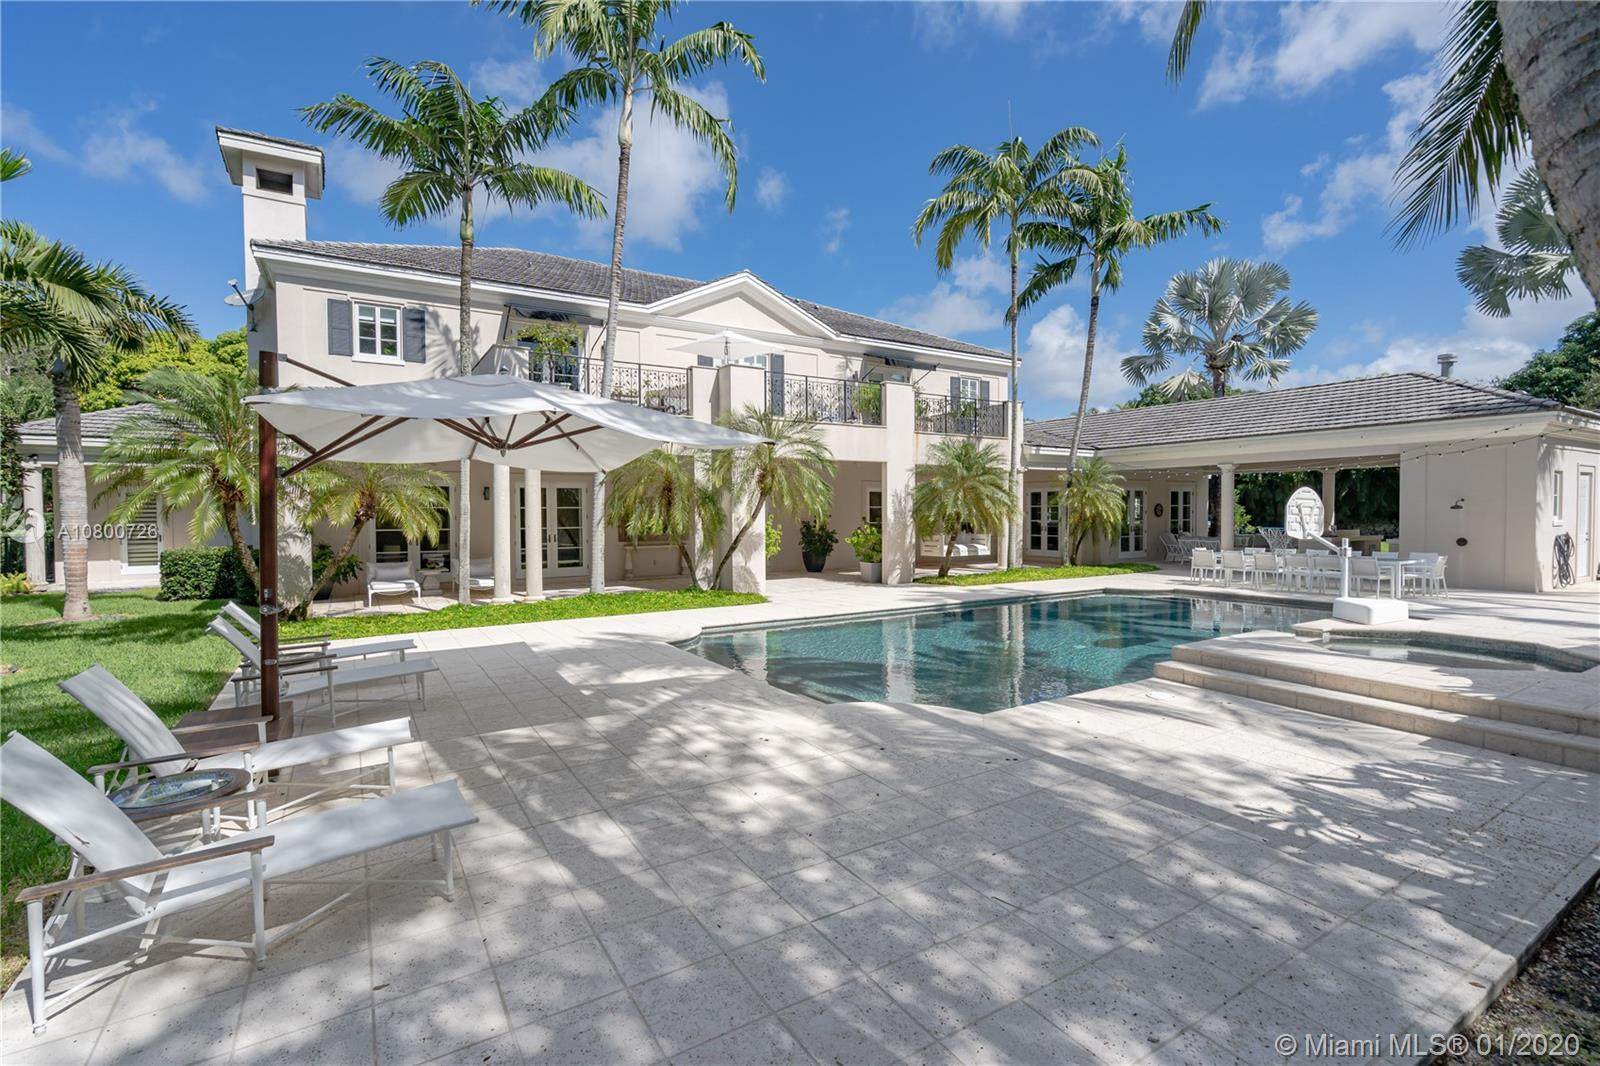 This exquisite residence has been tastefully upgraded while maintaining its modern classic design. S